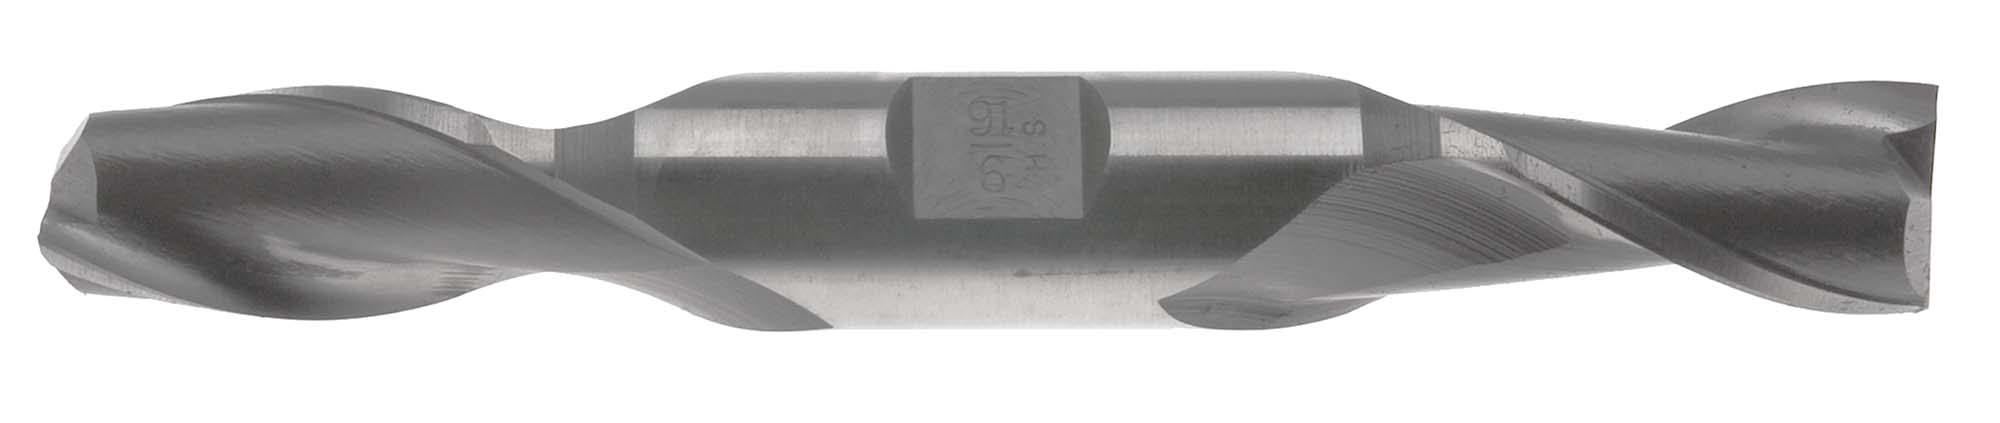 "EM-C15  15/32"" Double End 2 Flute End Mill, High Speed Steel,  1/2"" Shank"